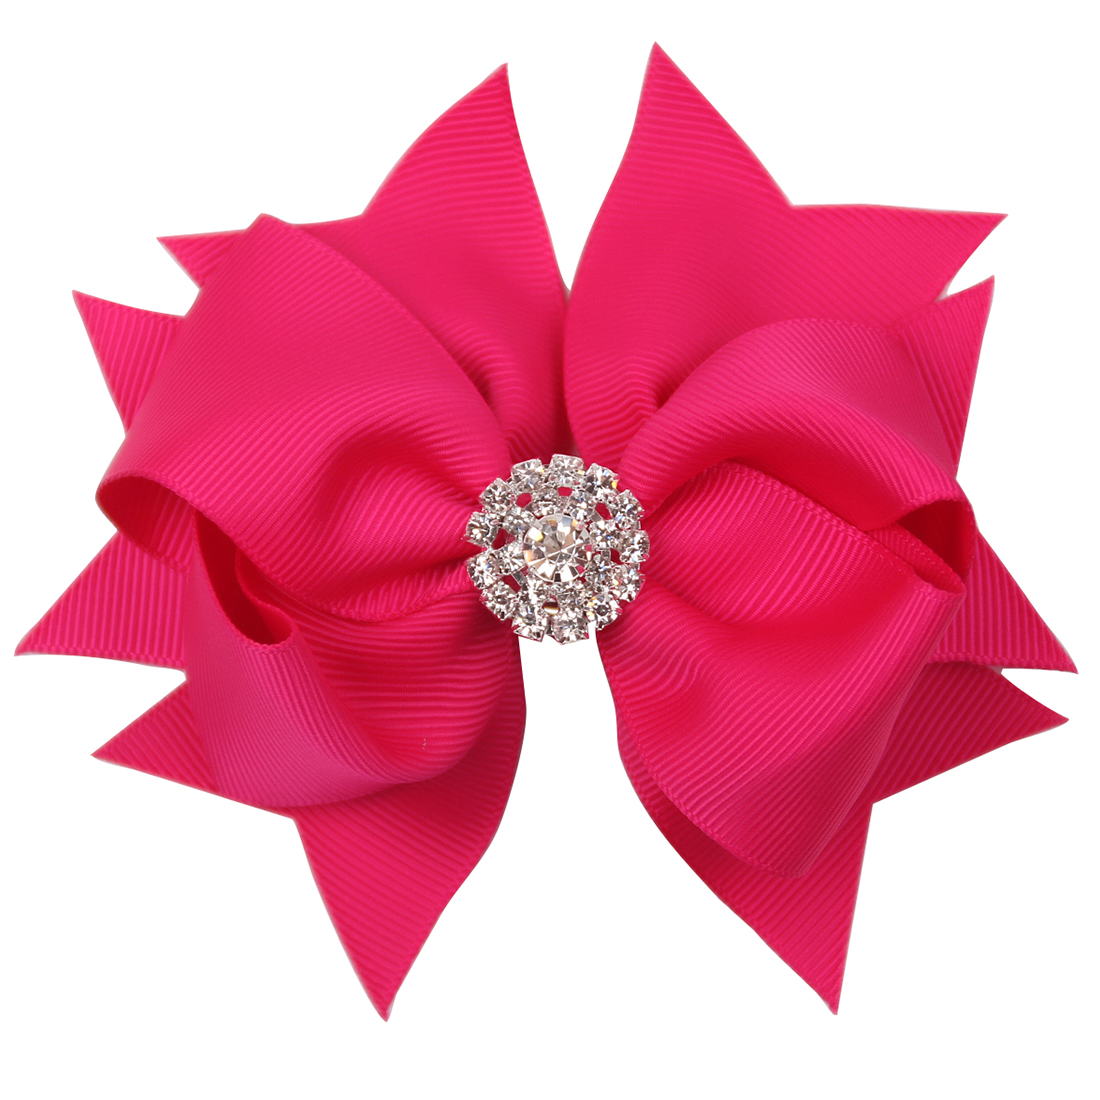 1pc 4inch 25 Colors Boutique Diamond Hair Bows With Clips Swllowtail Grosgrain Ribbon Bow Hairclip For Girls Hair Accessories